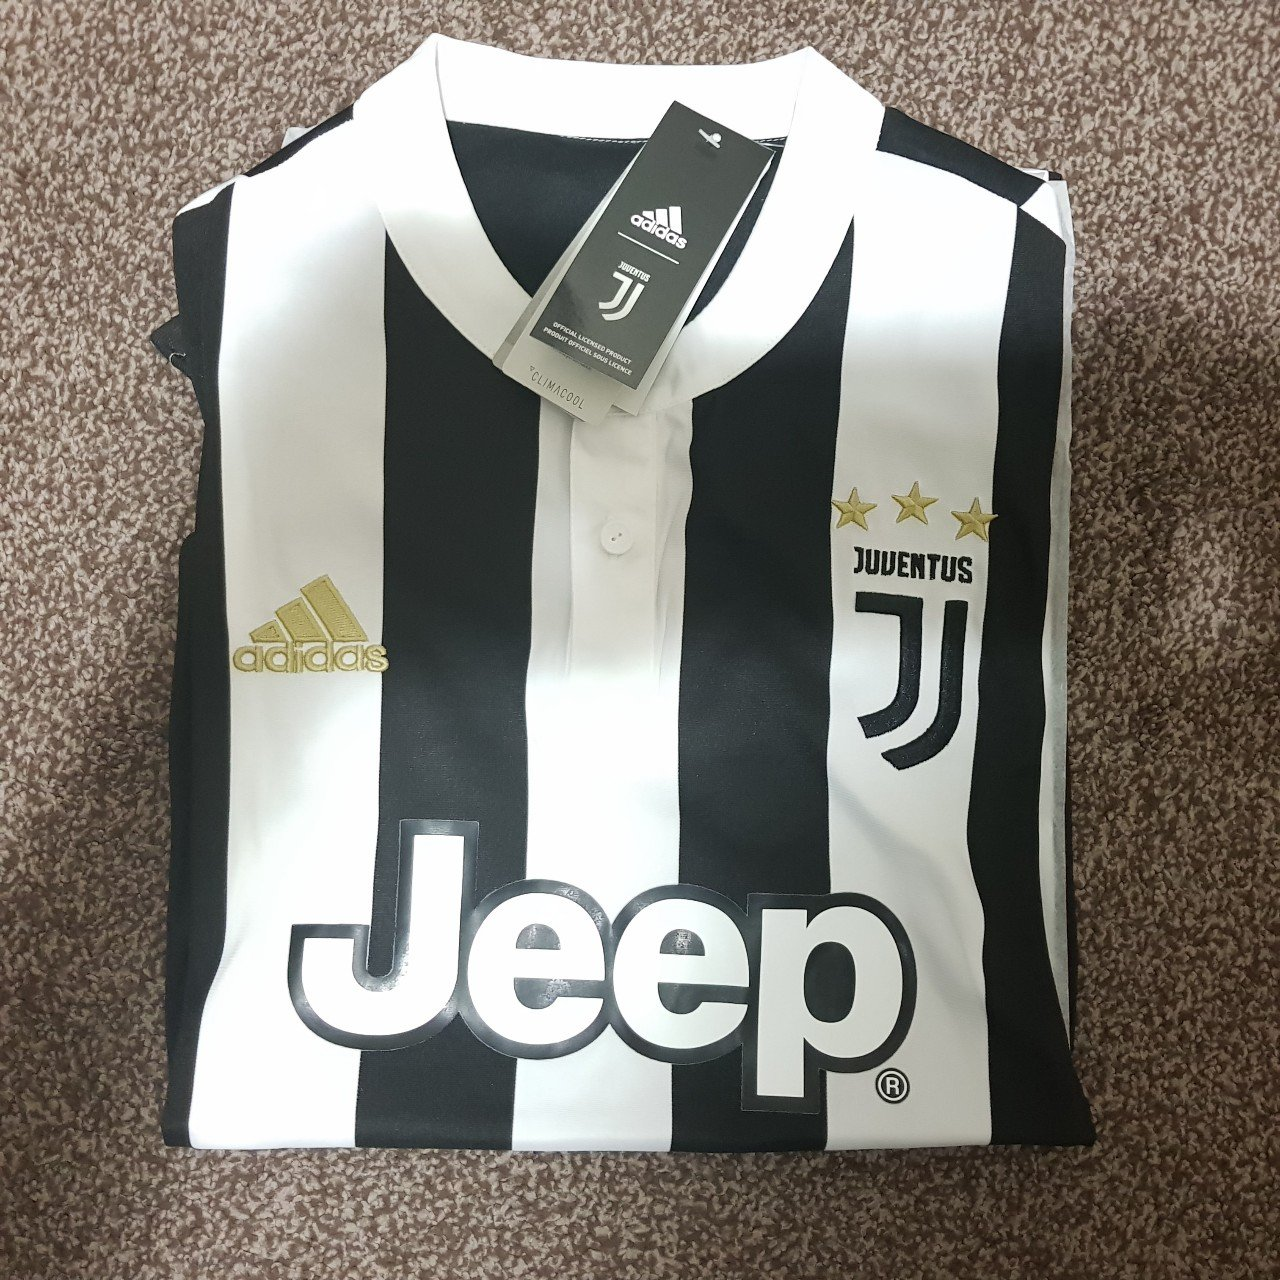 93792341b Juventus 2017 2018 Home kit  jersey + Sealed with tags - A - Depop